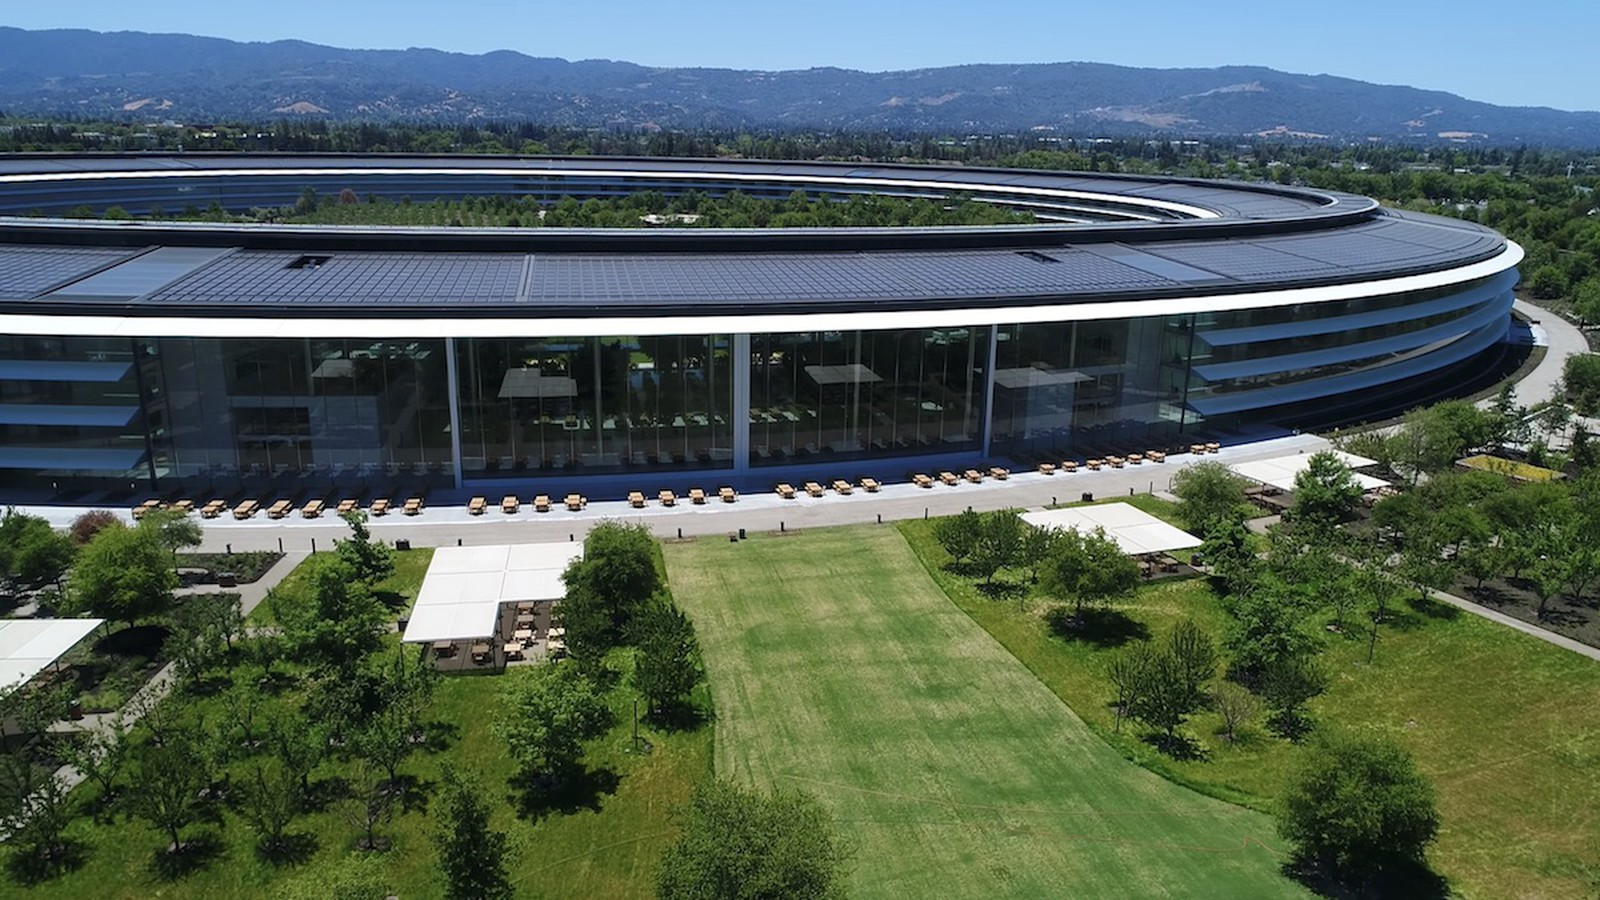 apple-park-drone-june-2018-2.jpg